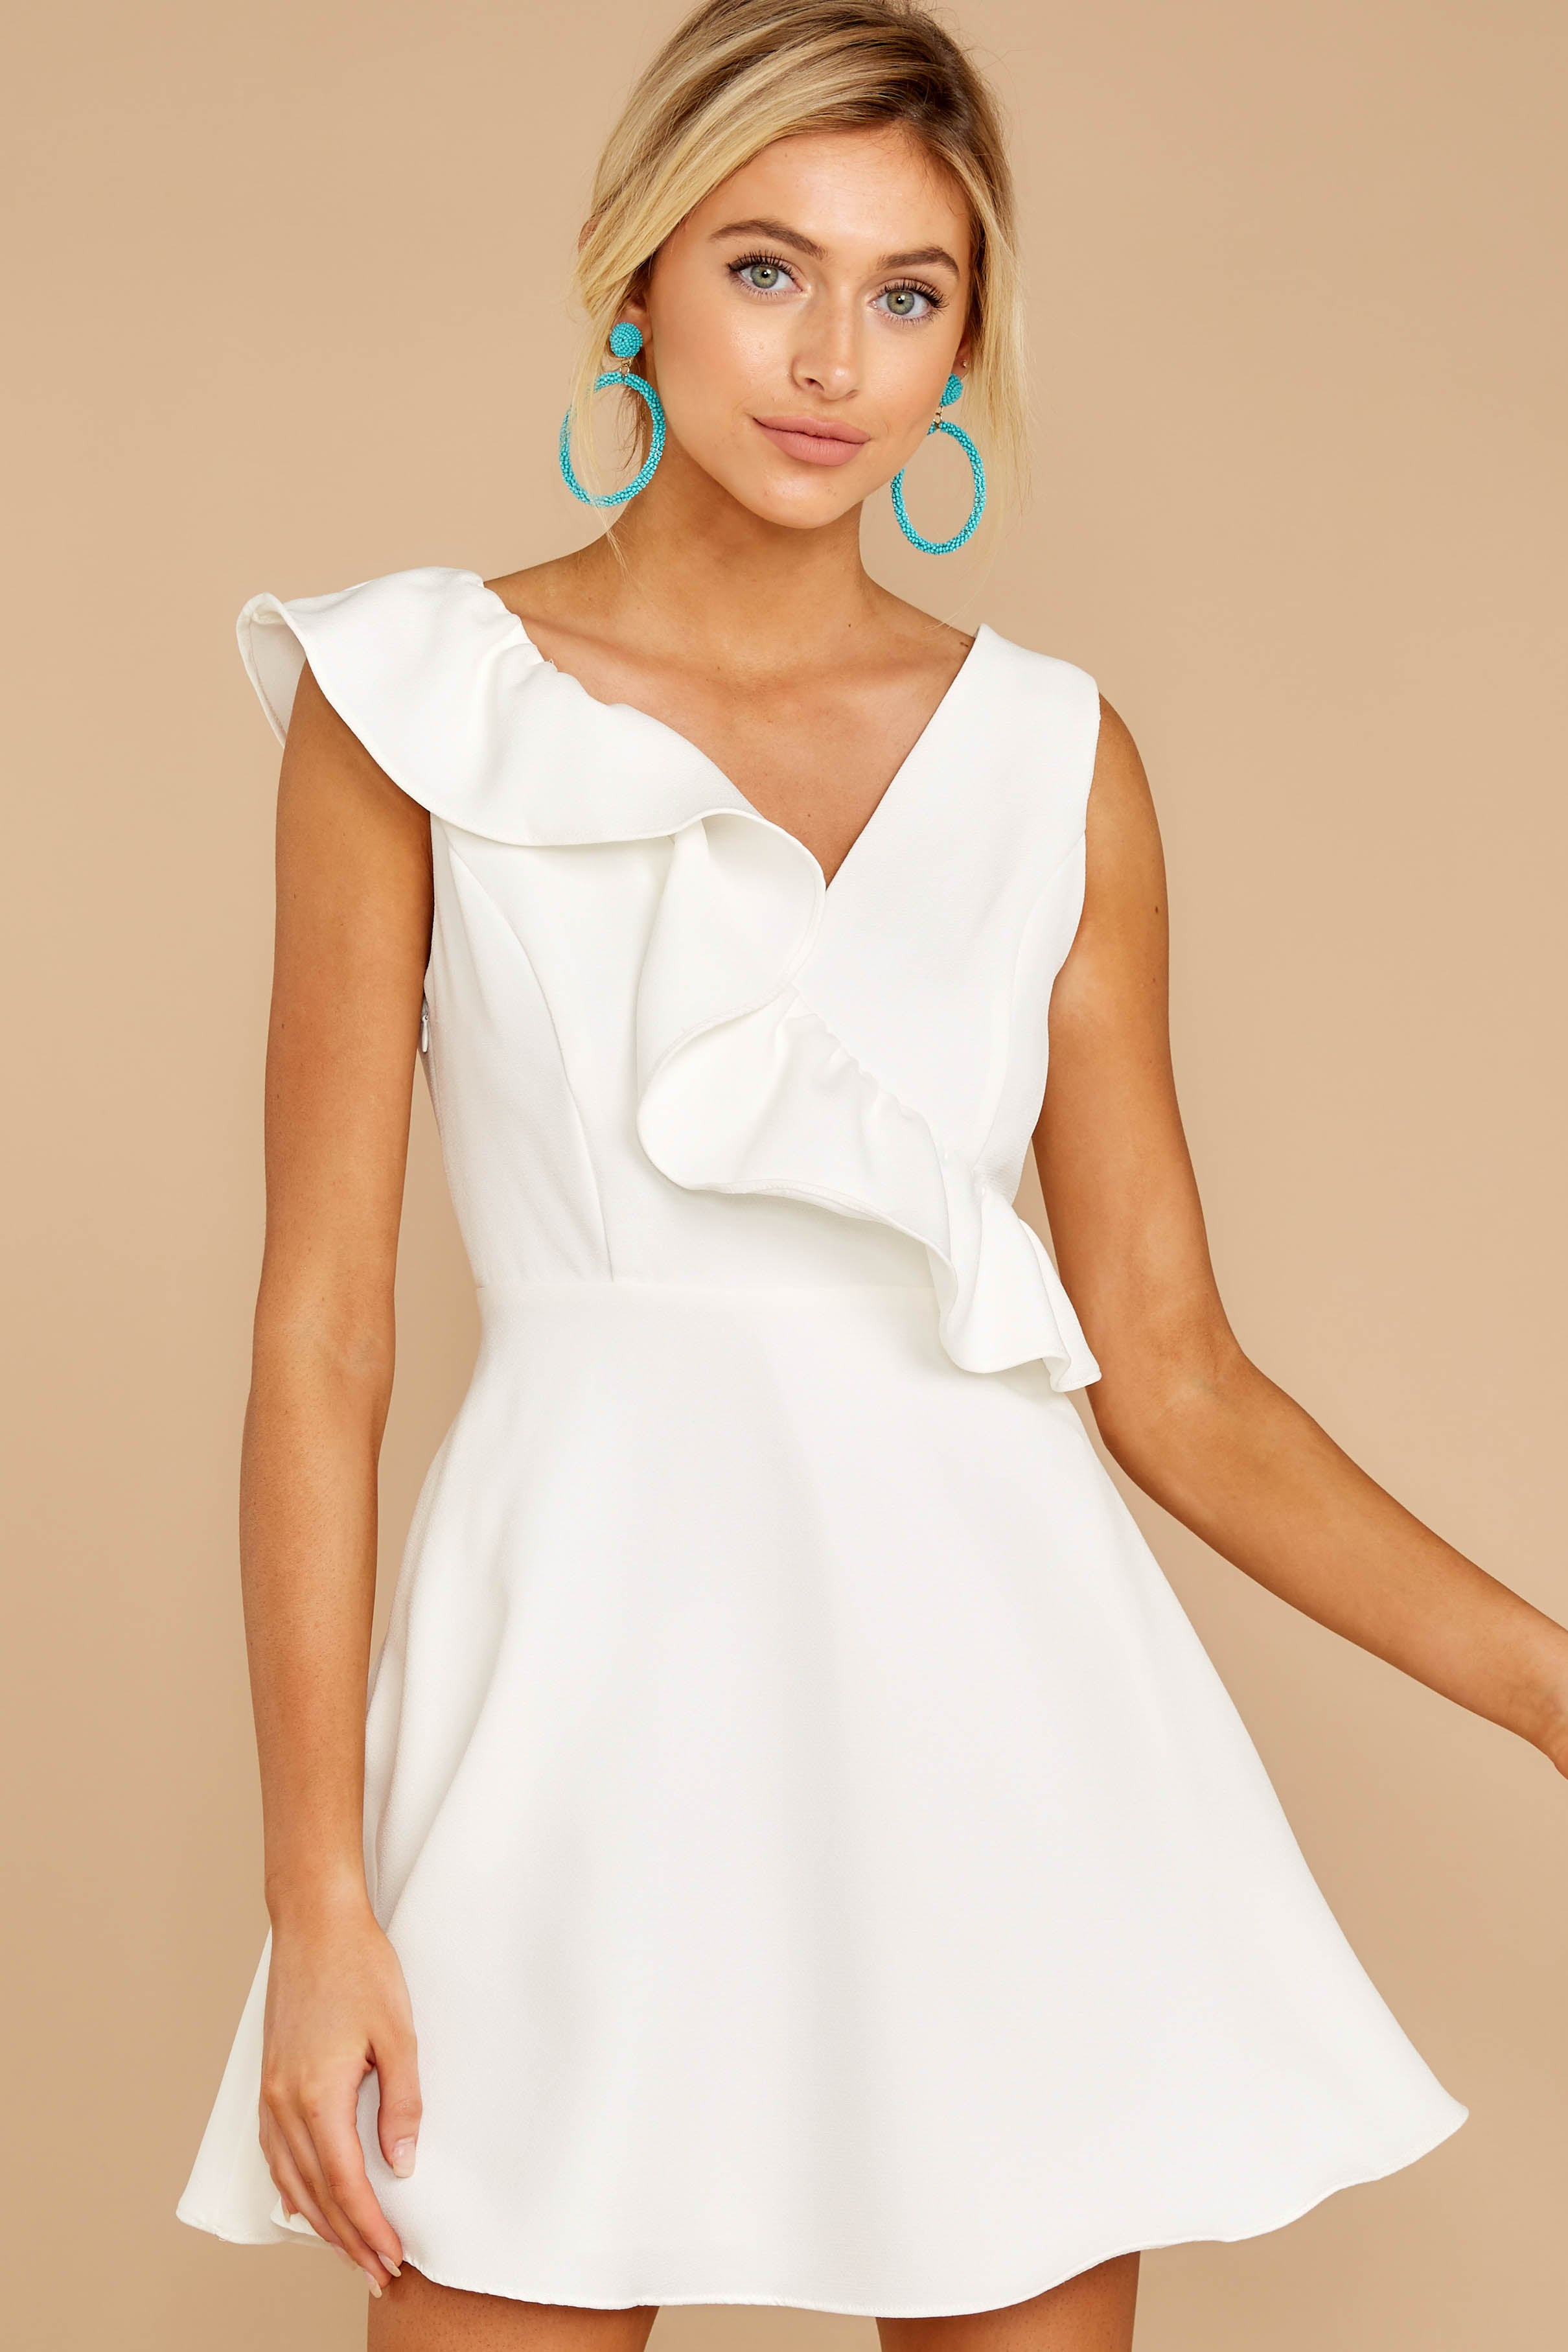 Dependably Sweet White Dress